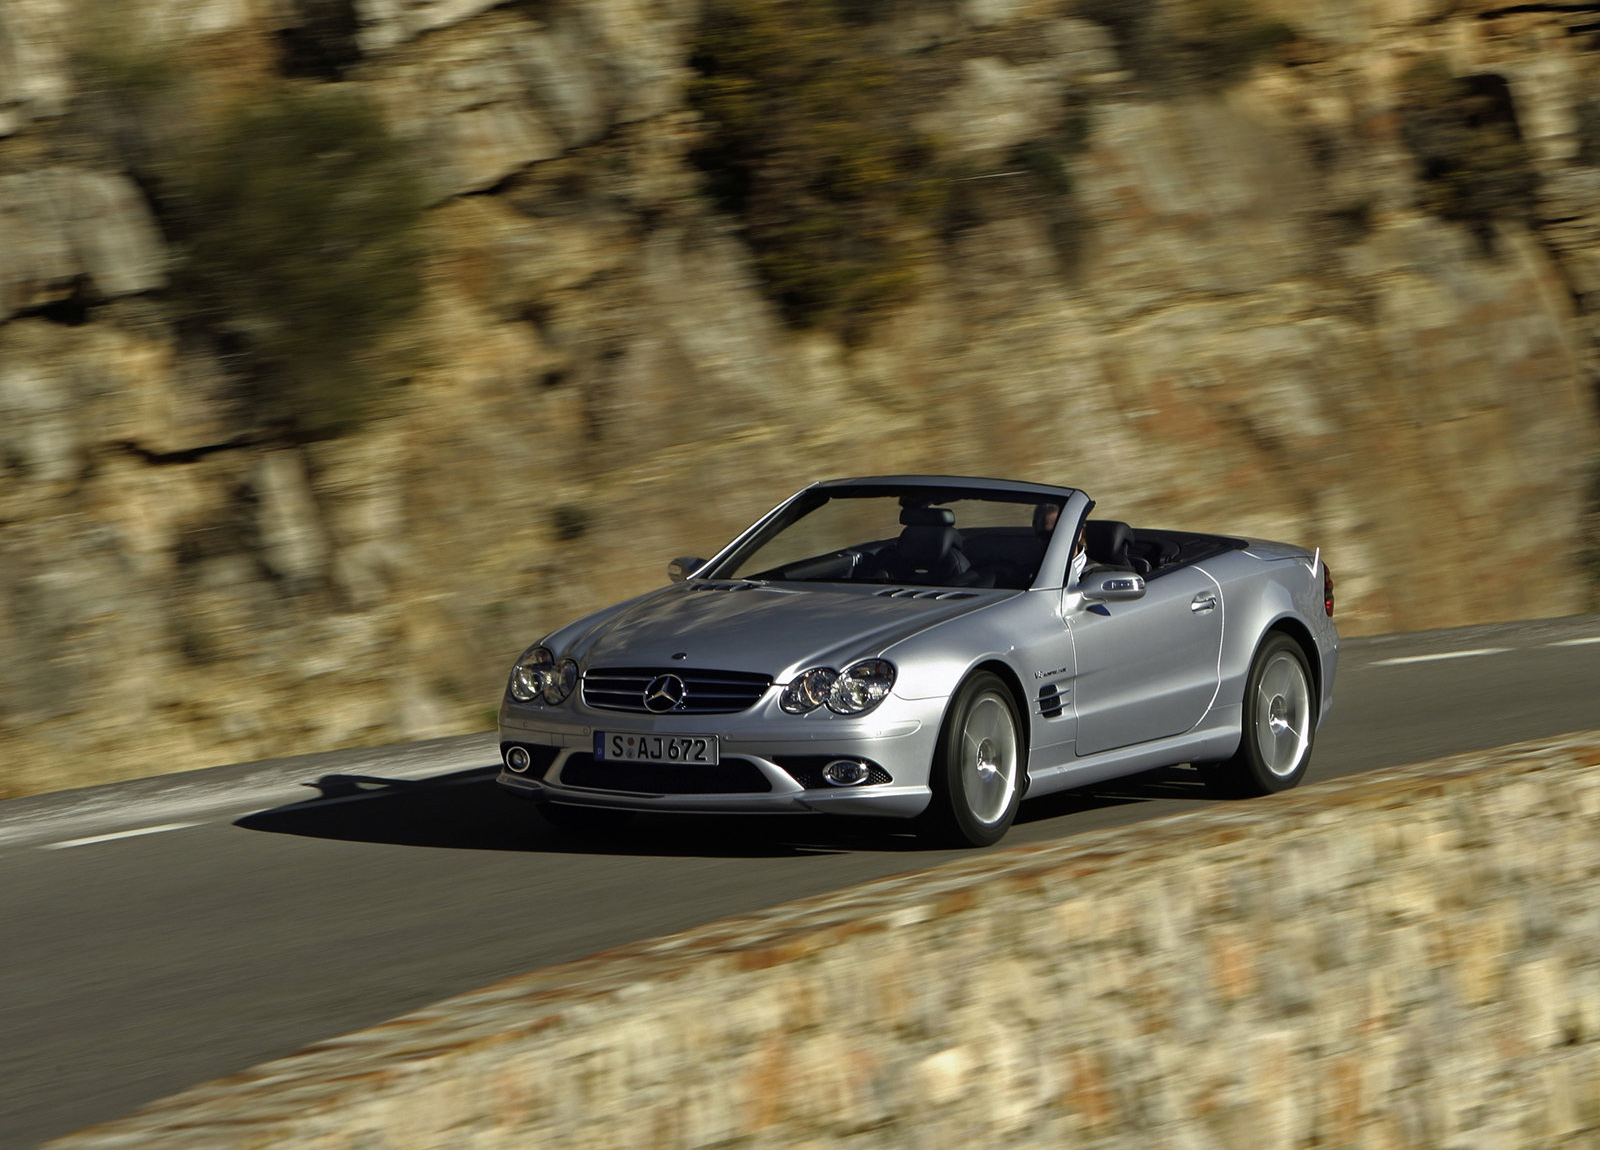 2006 mercedes benz sl55 amg hd pictures for Mercedes benz sl55